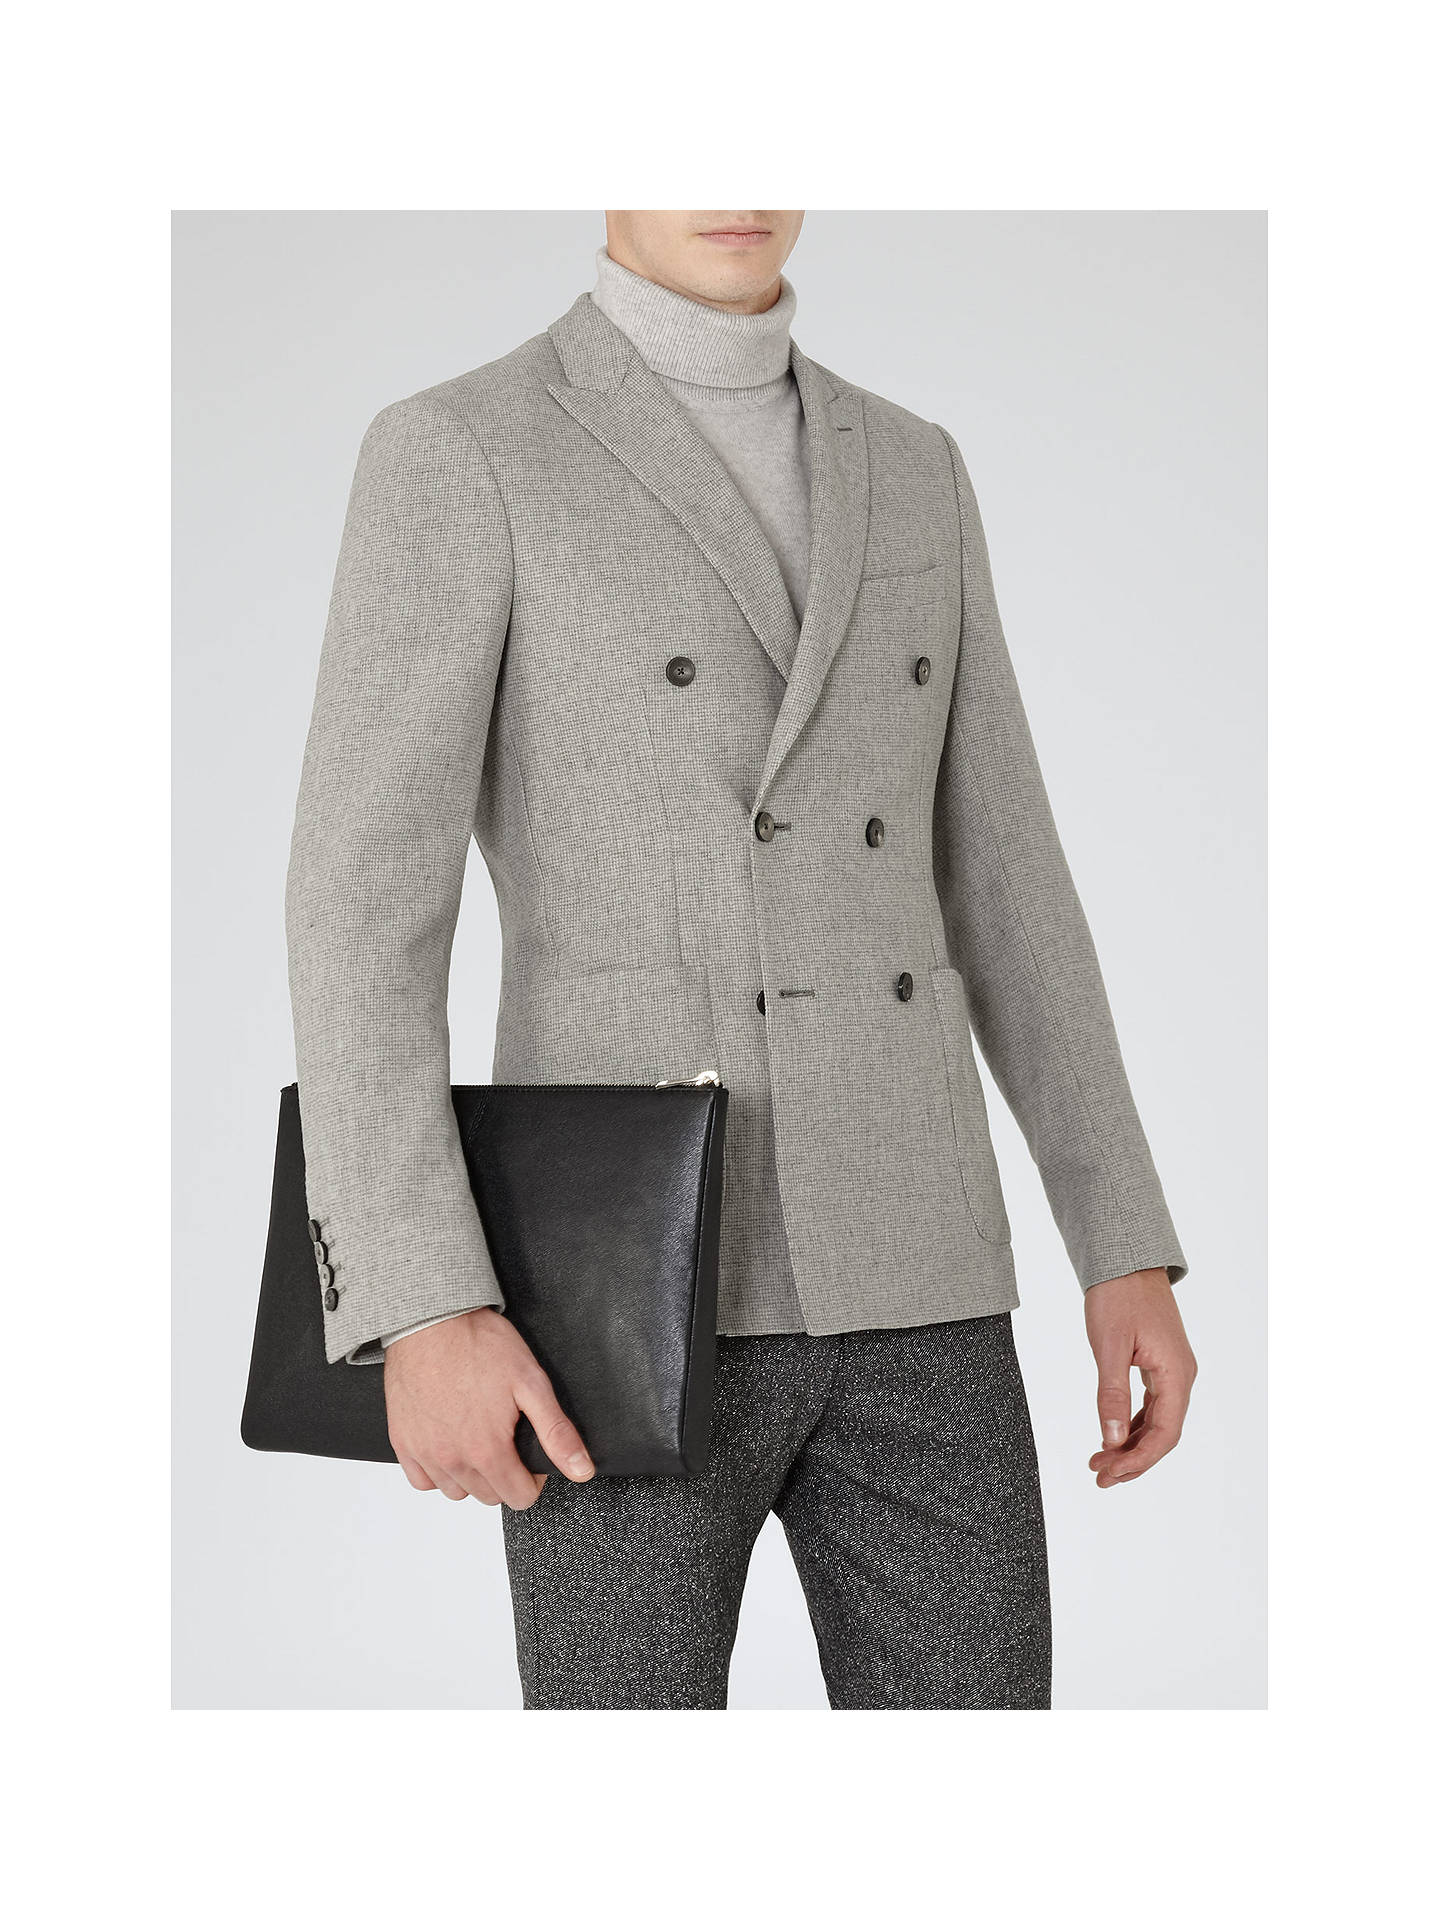 78ffd6db Reiss Carlo Double Breasted Blazer, Light Grey at John Lewis & Partners